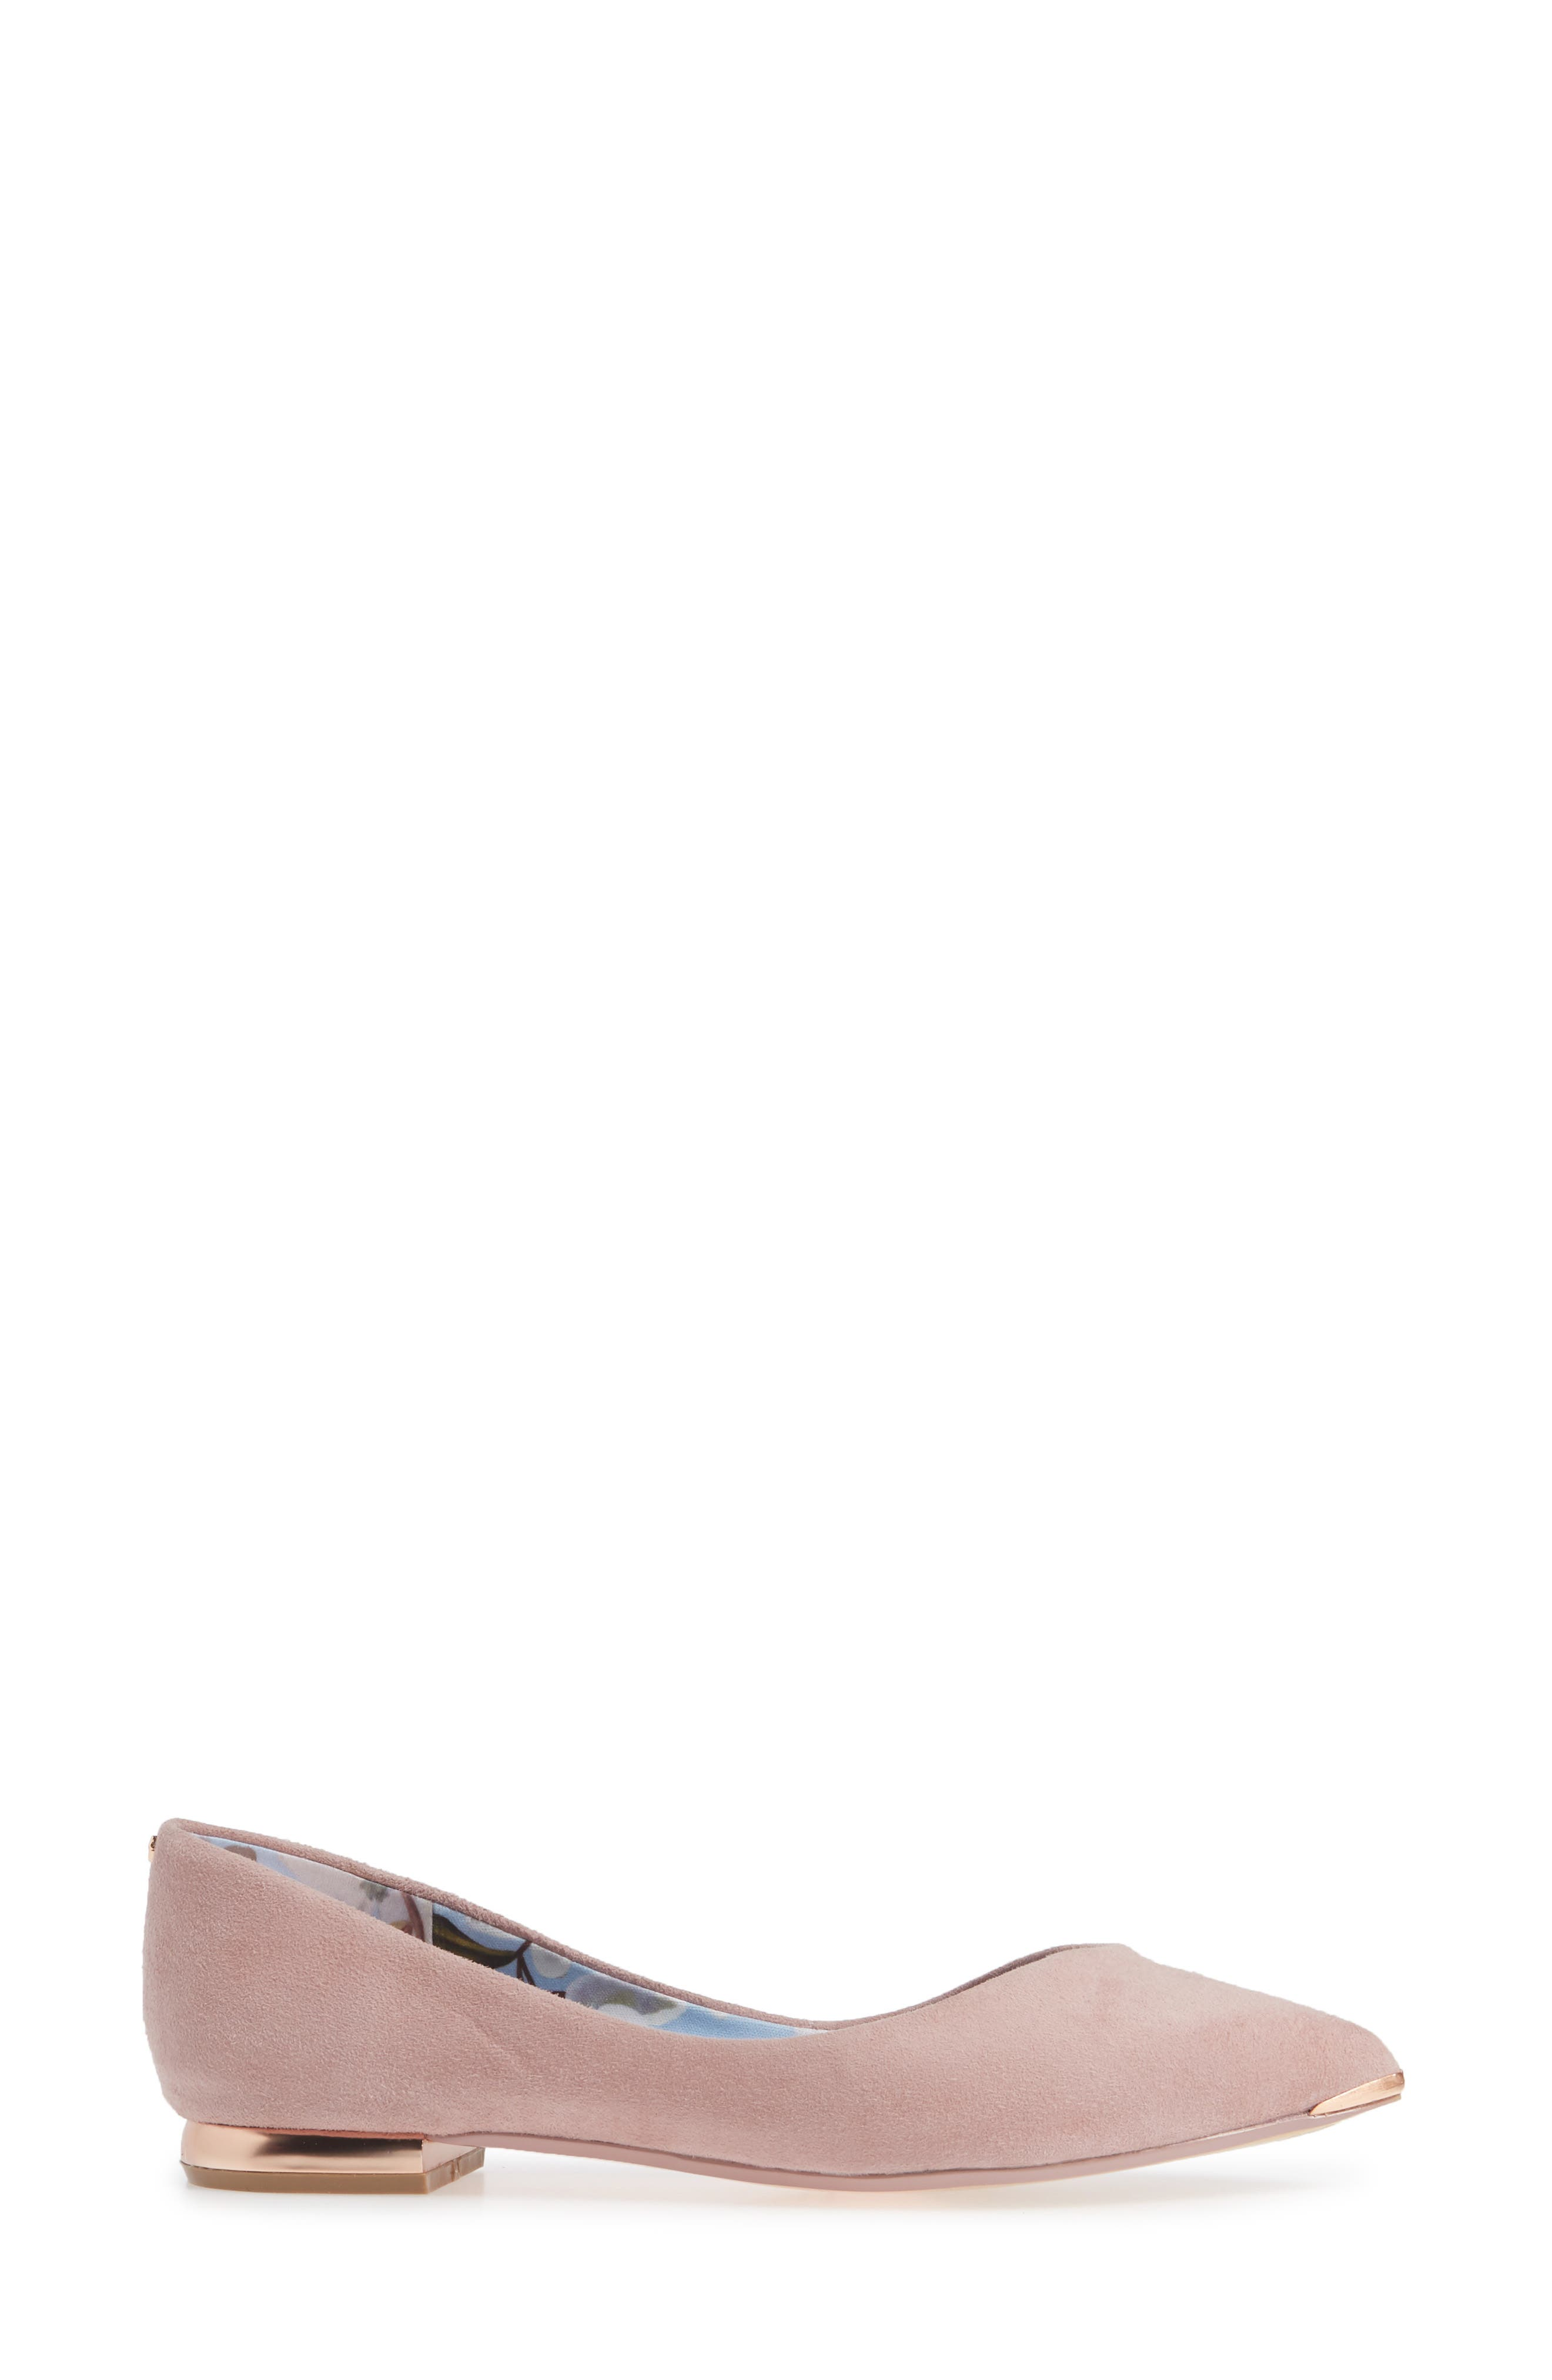 TED BAKER LONDON,                             Mancies Pointy Toe Flat,                             Alternate thumbnail 3, color,                             WINTER ROSE SUEDE